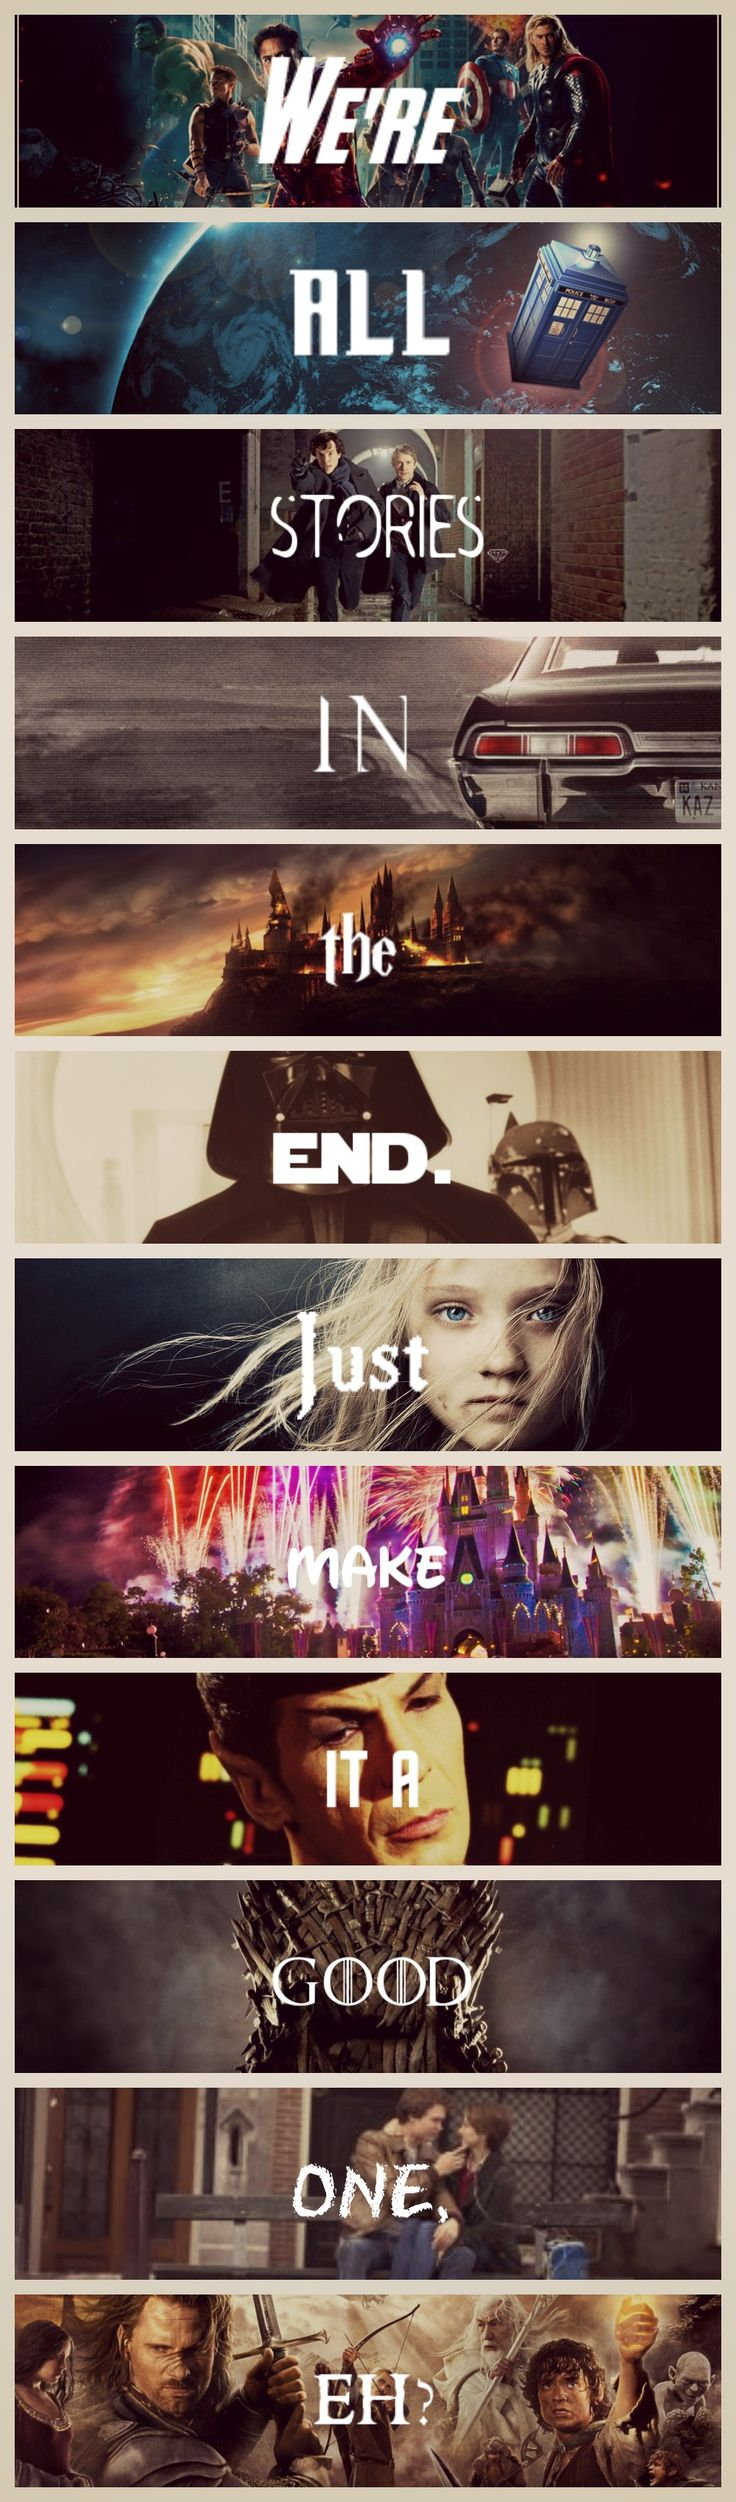 """We're all stories, in the end. Just make it a good one, eh?"" The Avengers, Doctor Who, Sherlock, Supernatural, Harry Potter, Star Wars, Les Miserables, Disney, Star Trek, Game of Thrones, The Fault in Our Stars, and The Lord of the Rings."